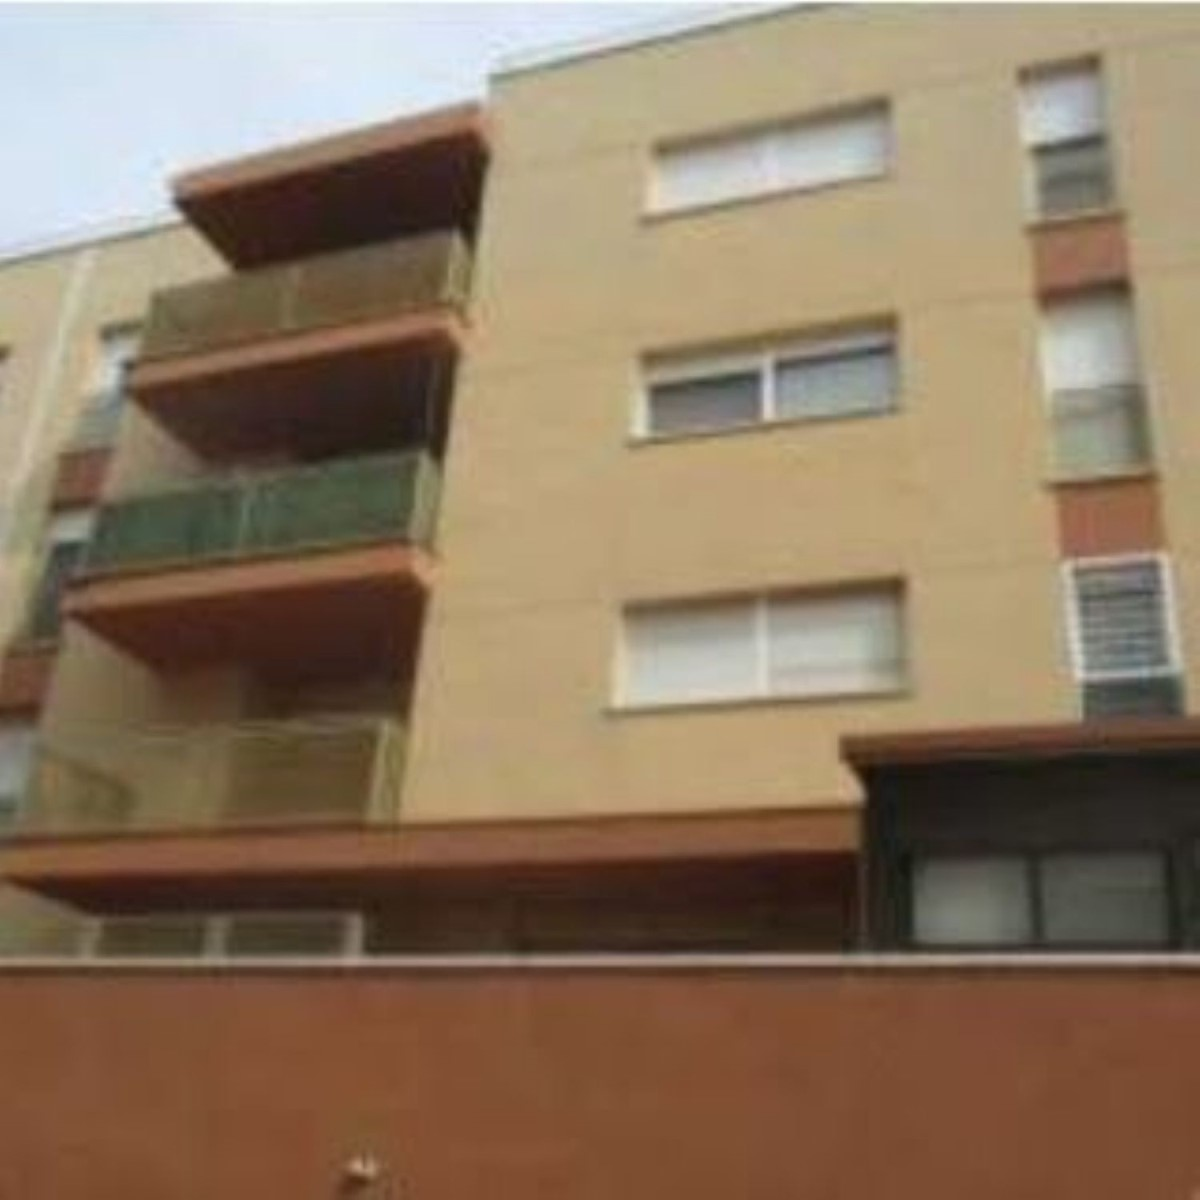 Apartment  For Sale in Molina de Segura, Molina de Segura